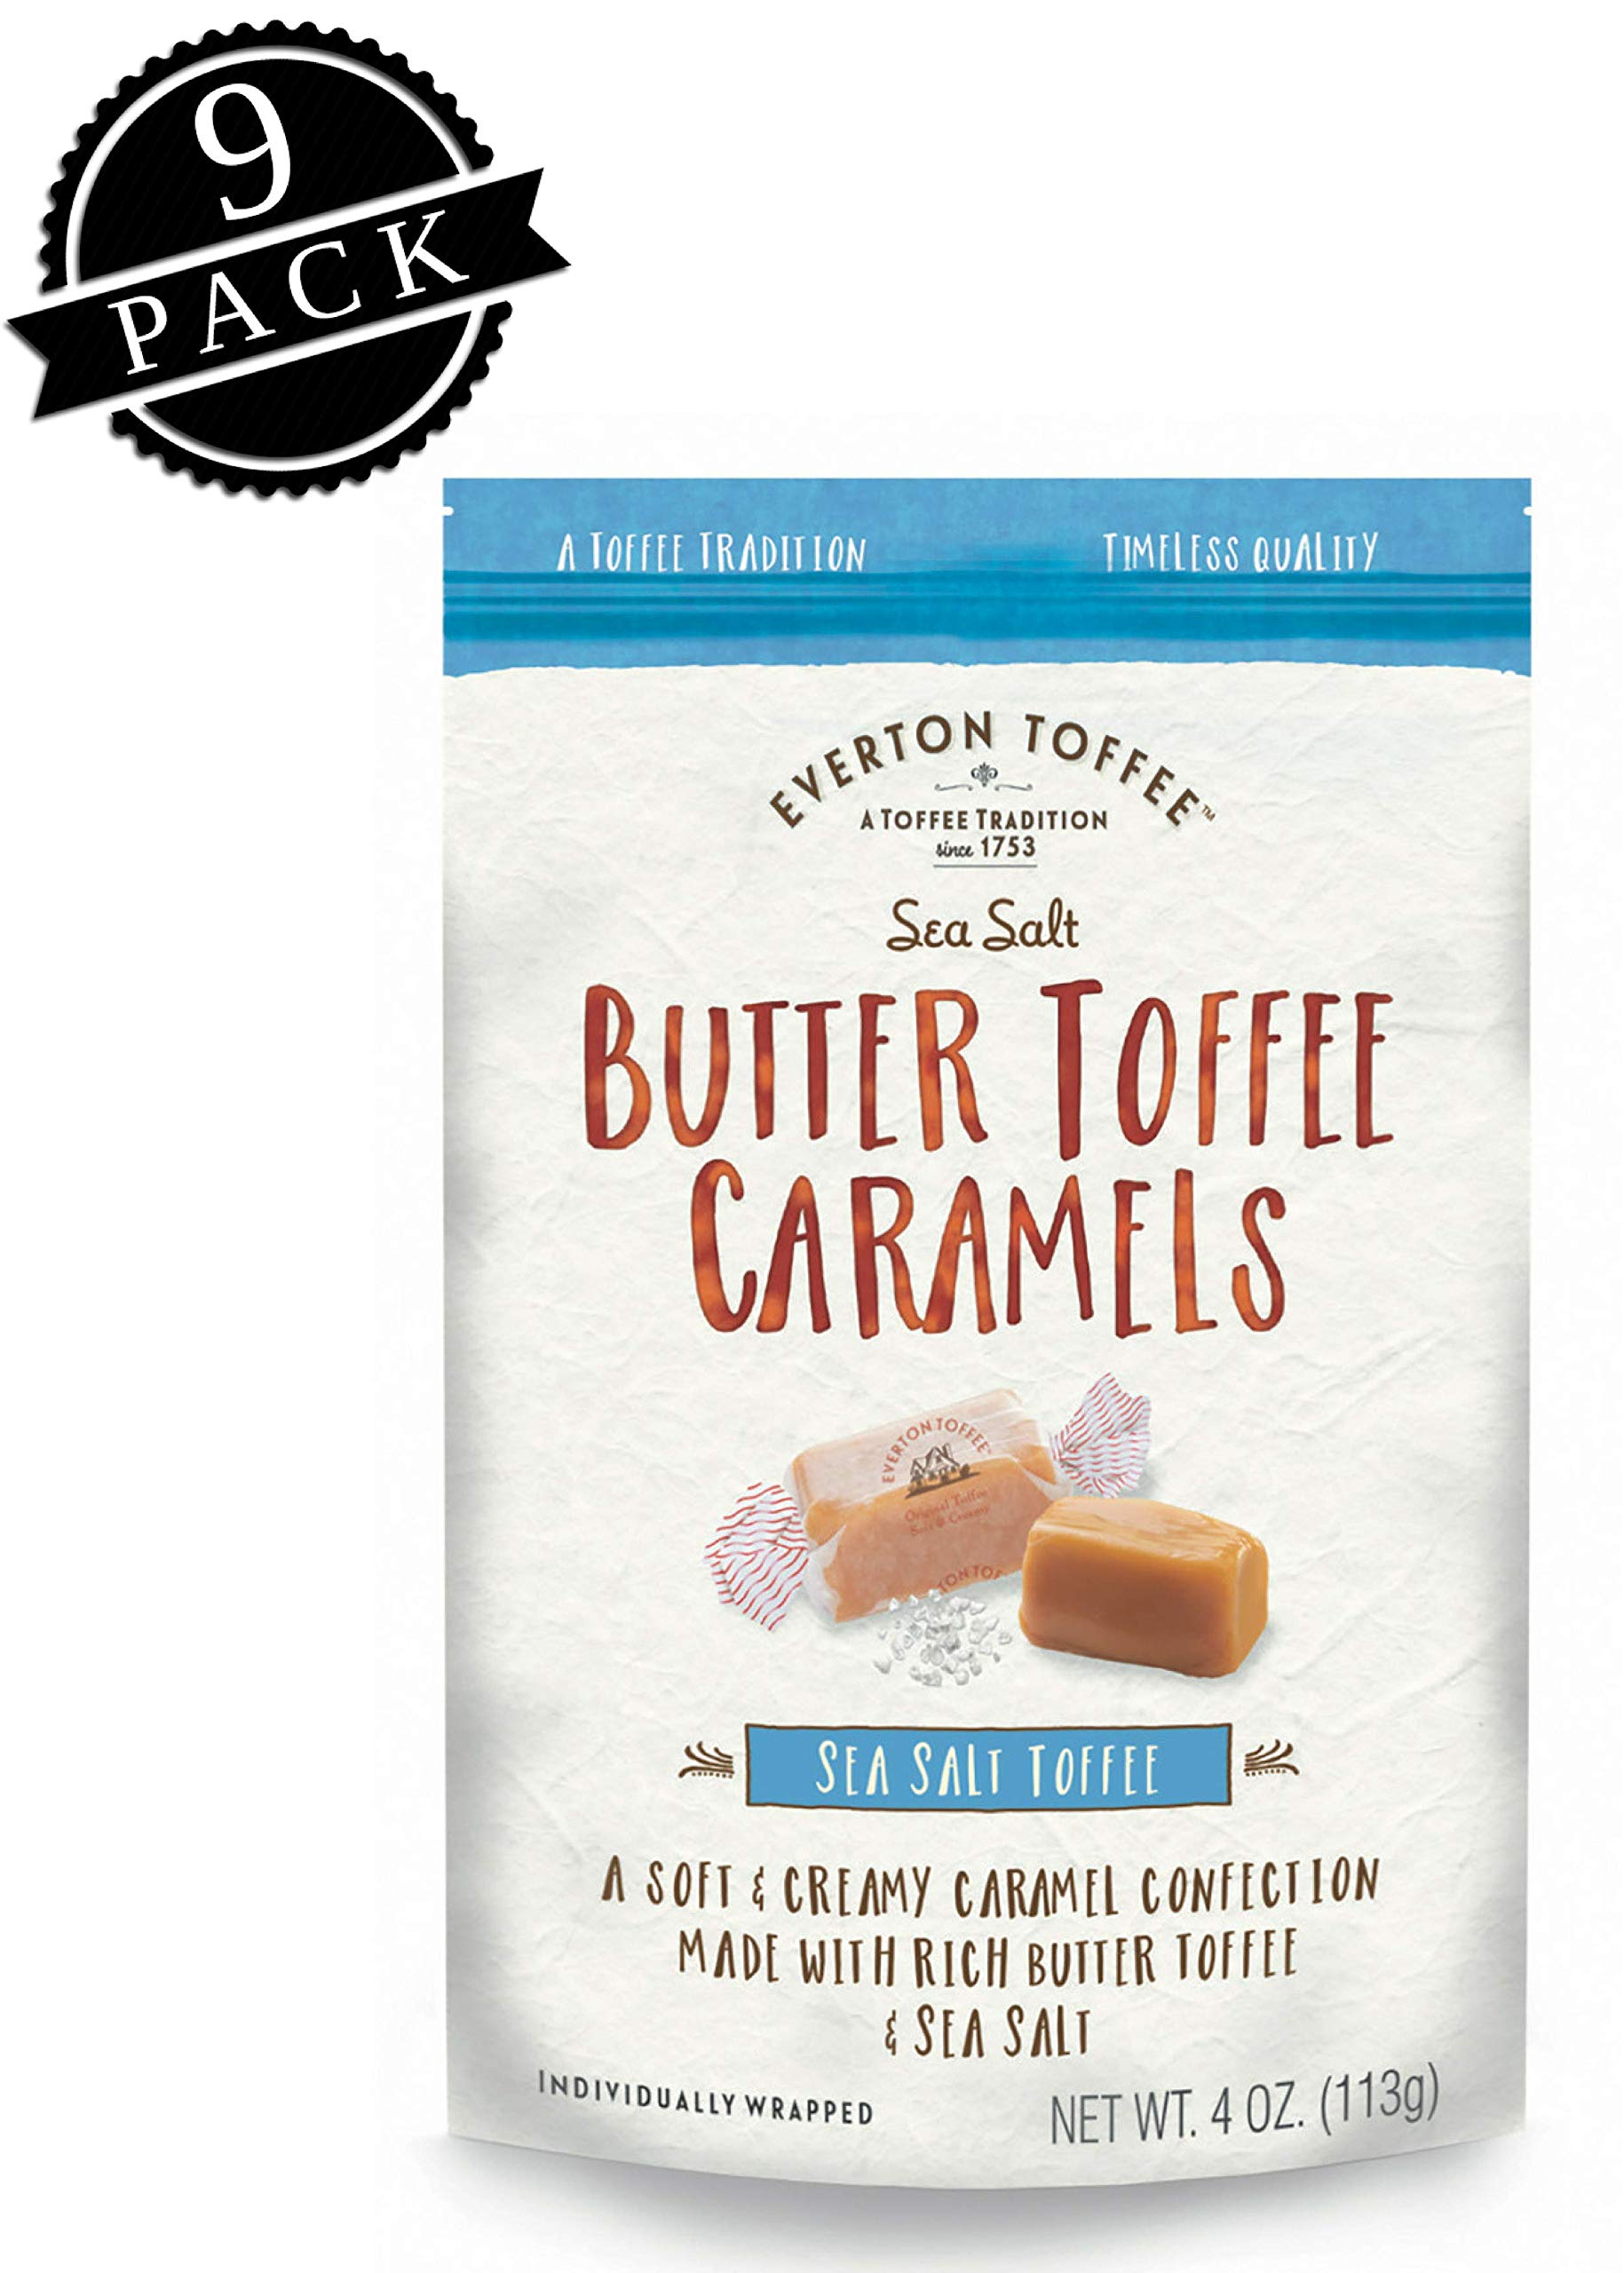 Everton Toffee Butter Toffee Caramels, Sea Salt Flavor (4 oz. bag, 9-pack). Gourmet, Artisan Soft and Creamy Toffee Caramels, Small Batch Crafted Carmel Candy Treats by Everton Toffee